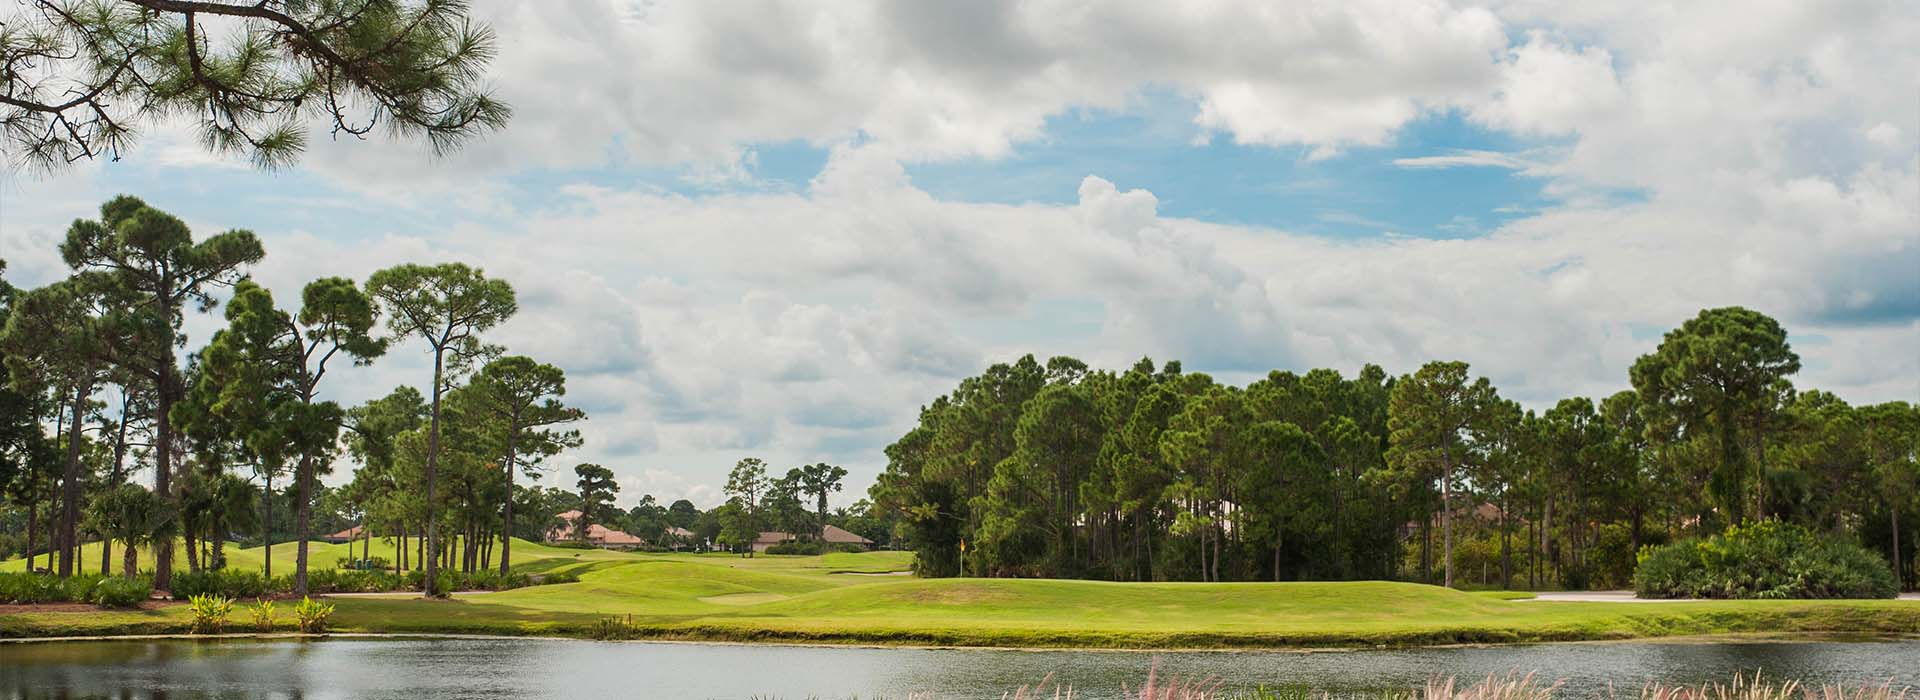 St. Lucie Trail Golf Club in Port St. Lucie is seen from across a lake